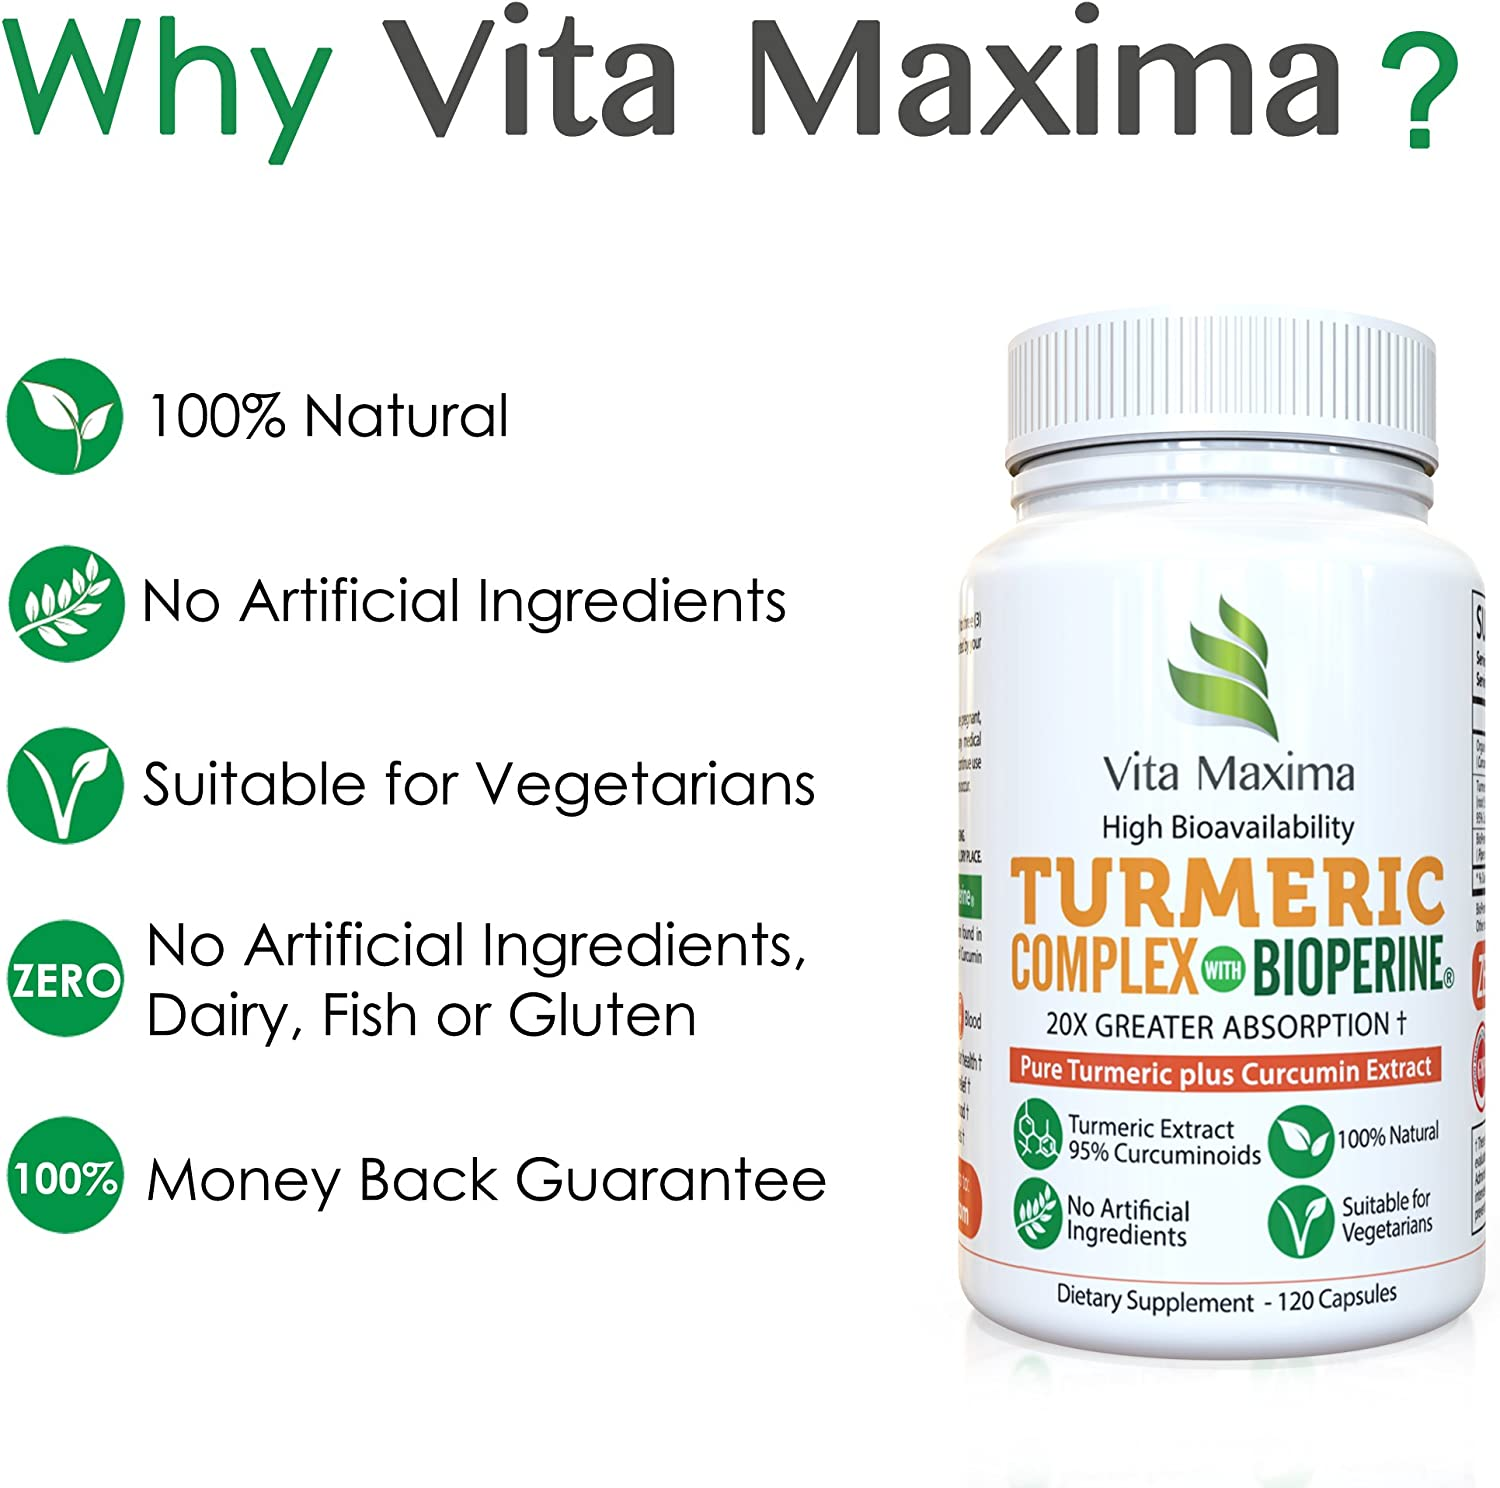 Vita Maxima Natural Turmeric Curcumin Supplement with Bioperine 1000mg 60 Days Supply